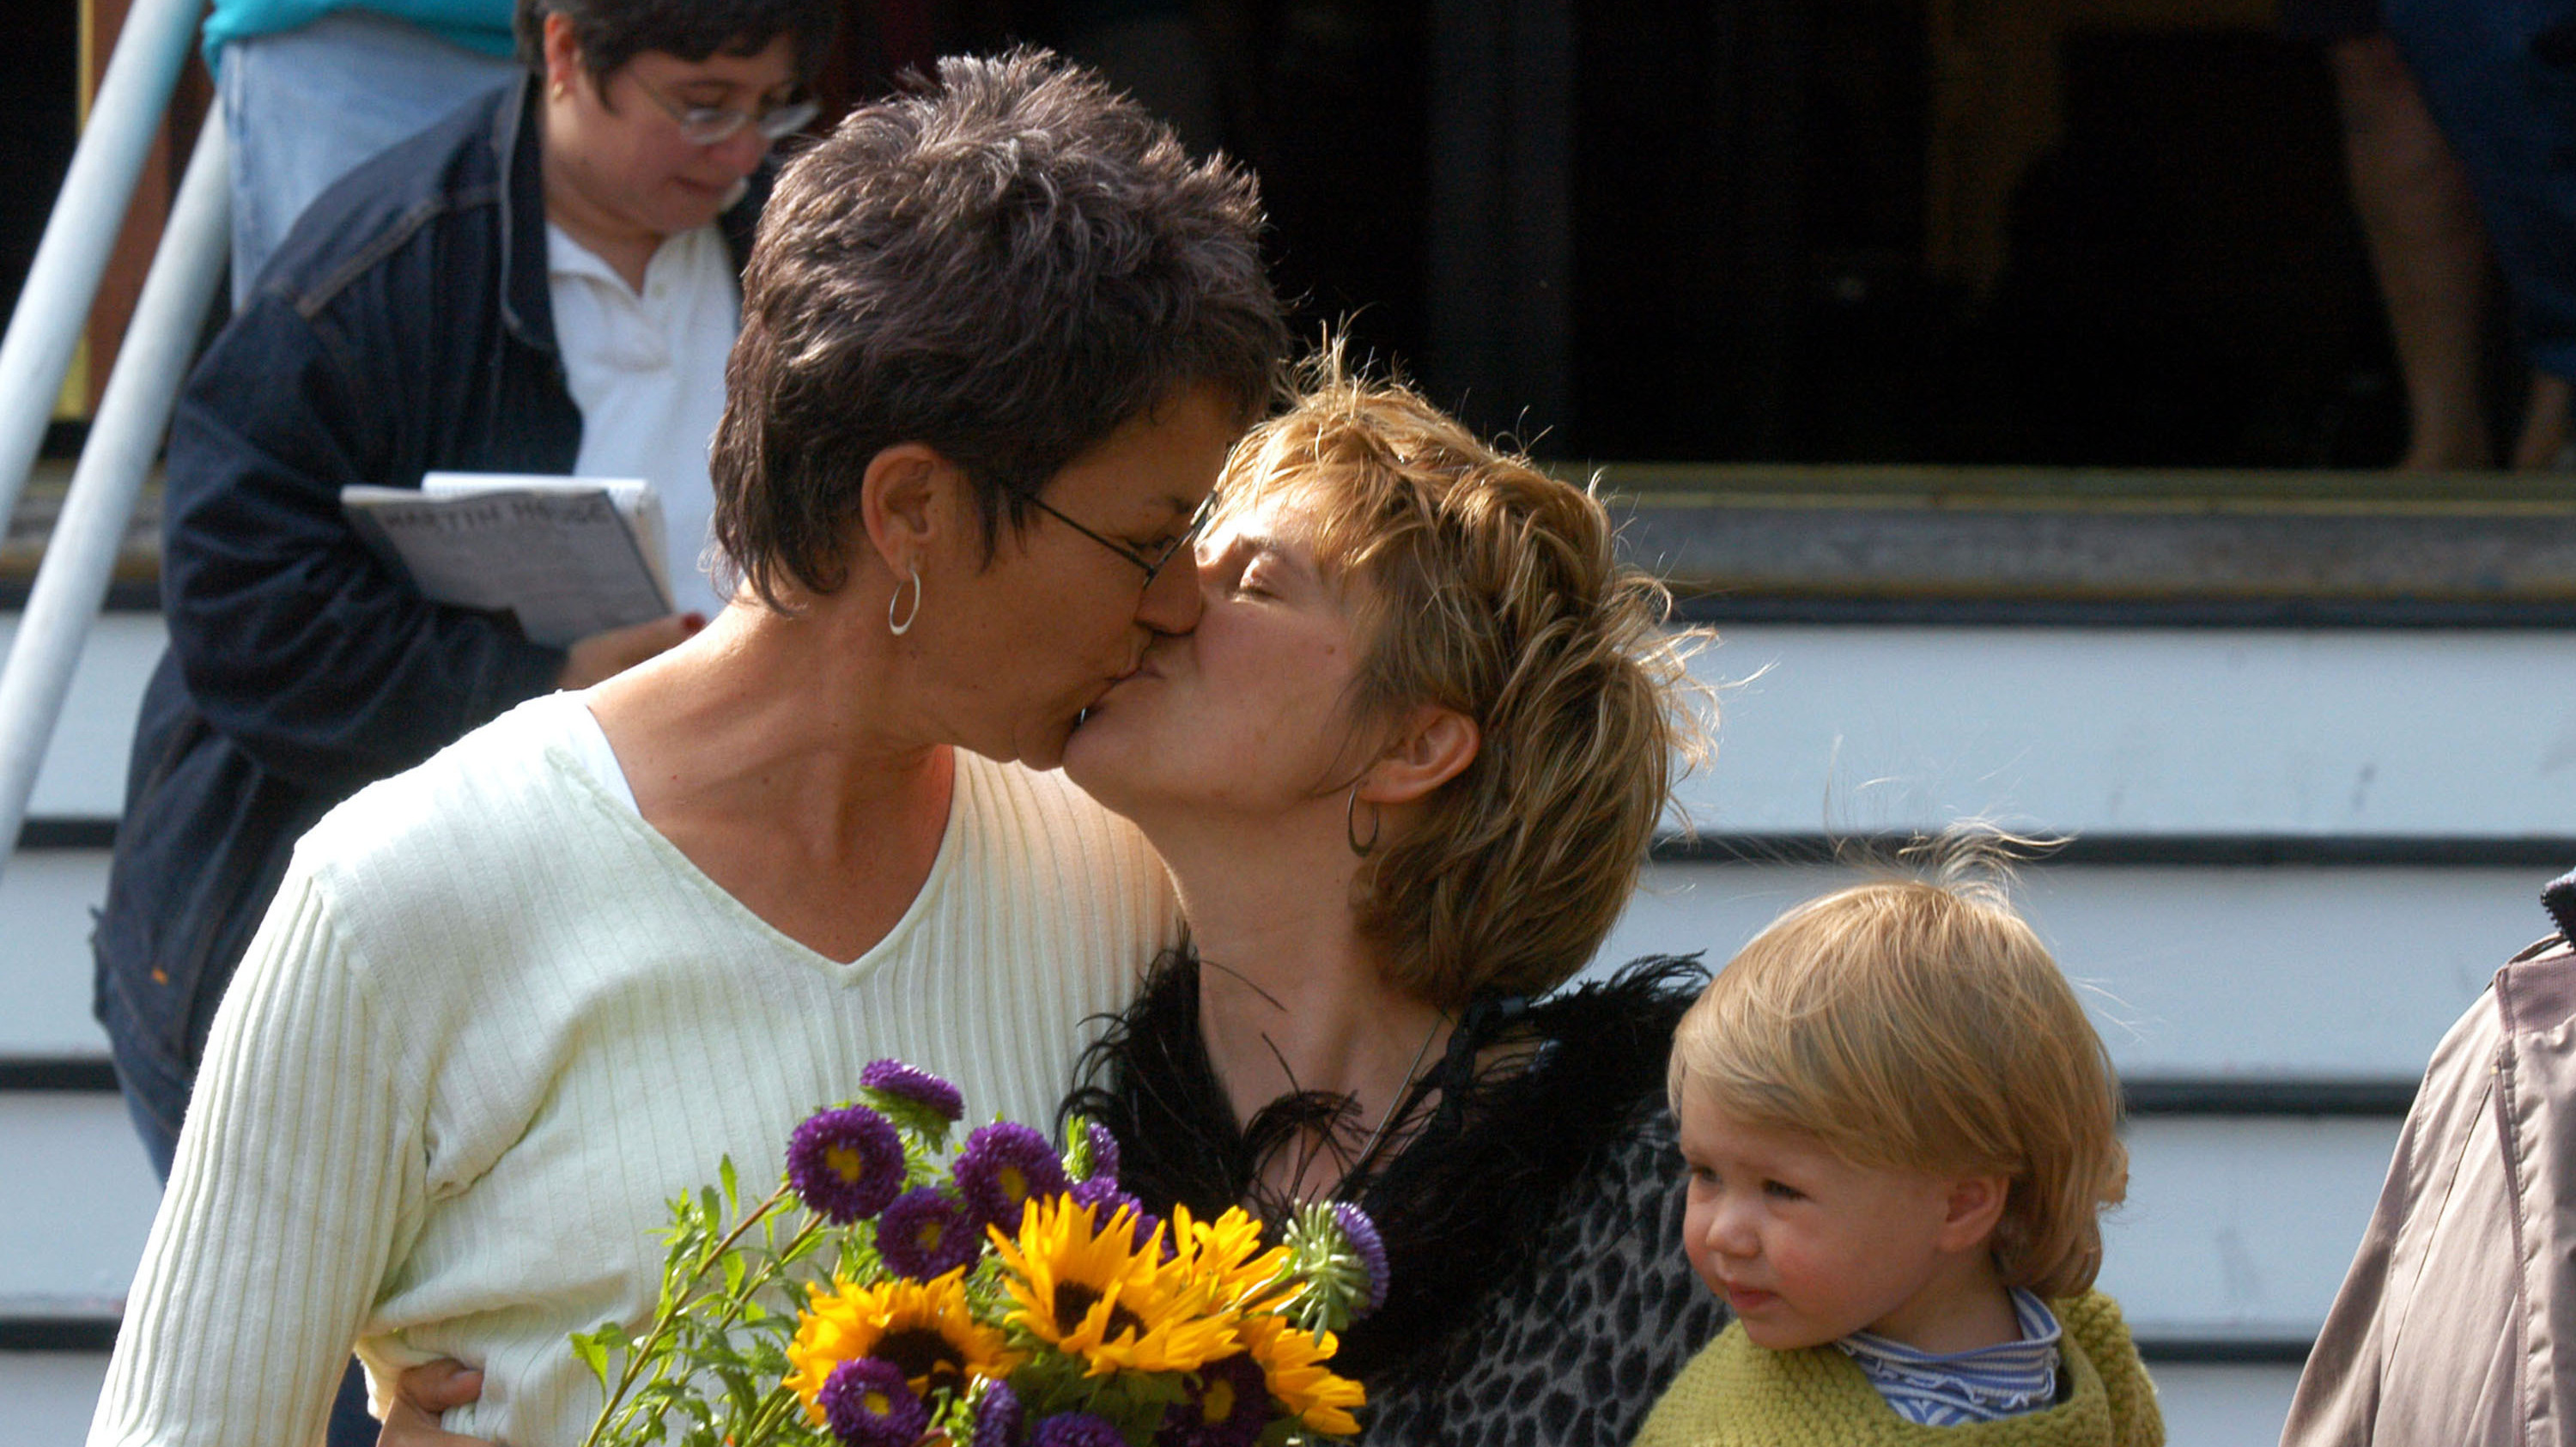 Cheaply gay weddings in provincetown mass